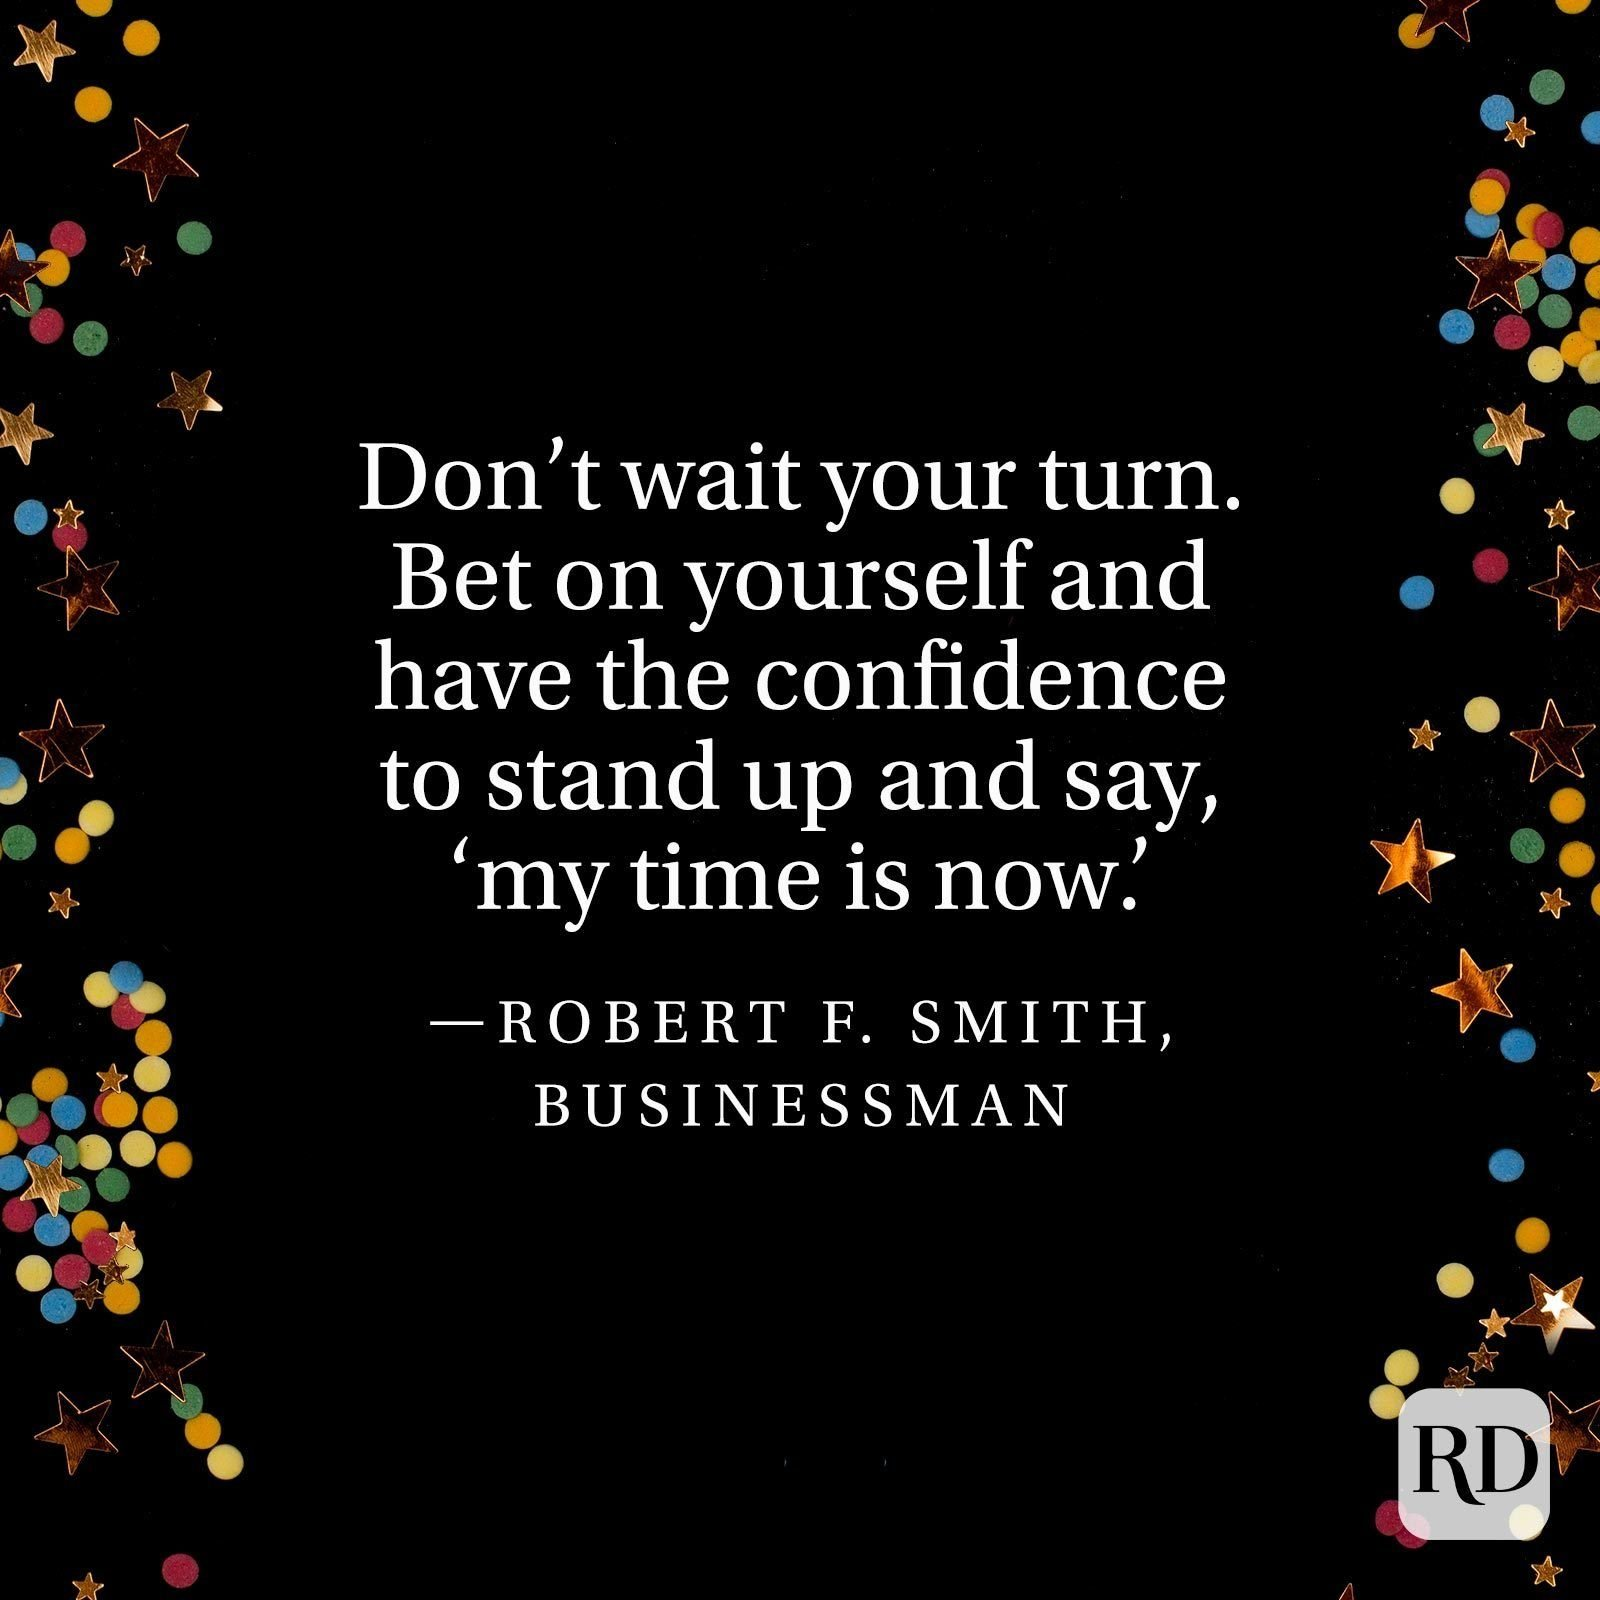 """""""Don't wait your turn. Bet on yourself and have the confidence to stand up and say, 'my time is now.'"""" —Robert F. Smith, businessman"""